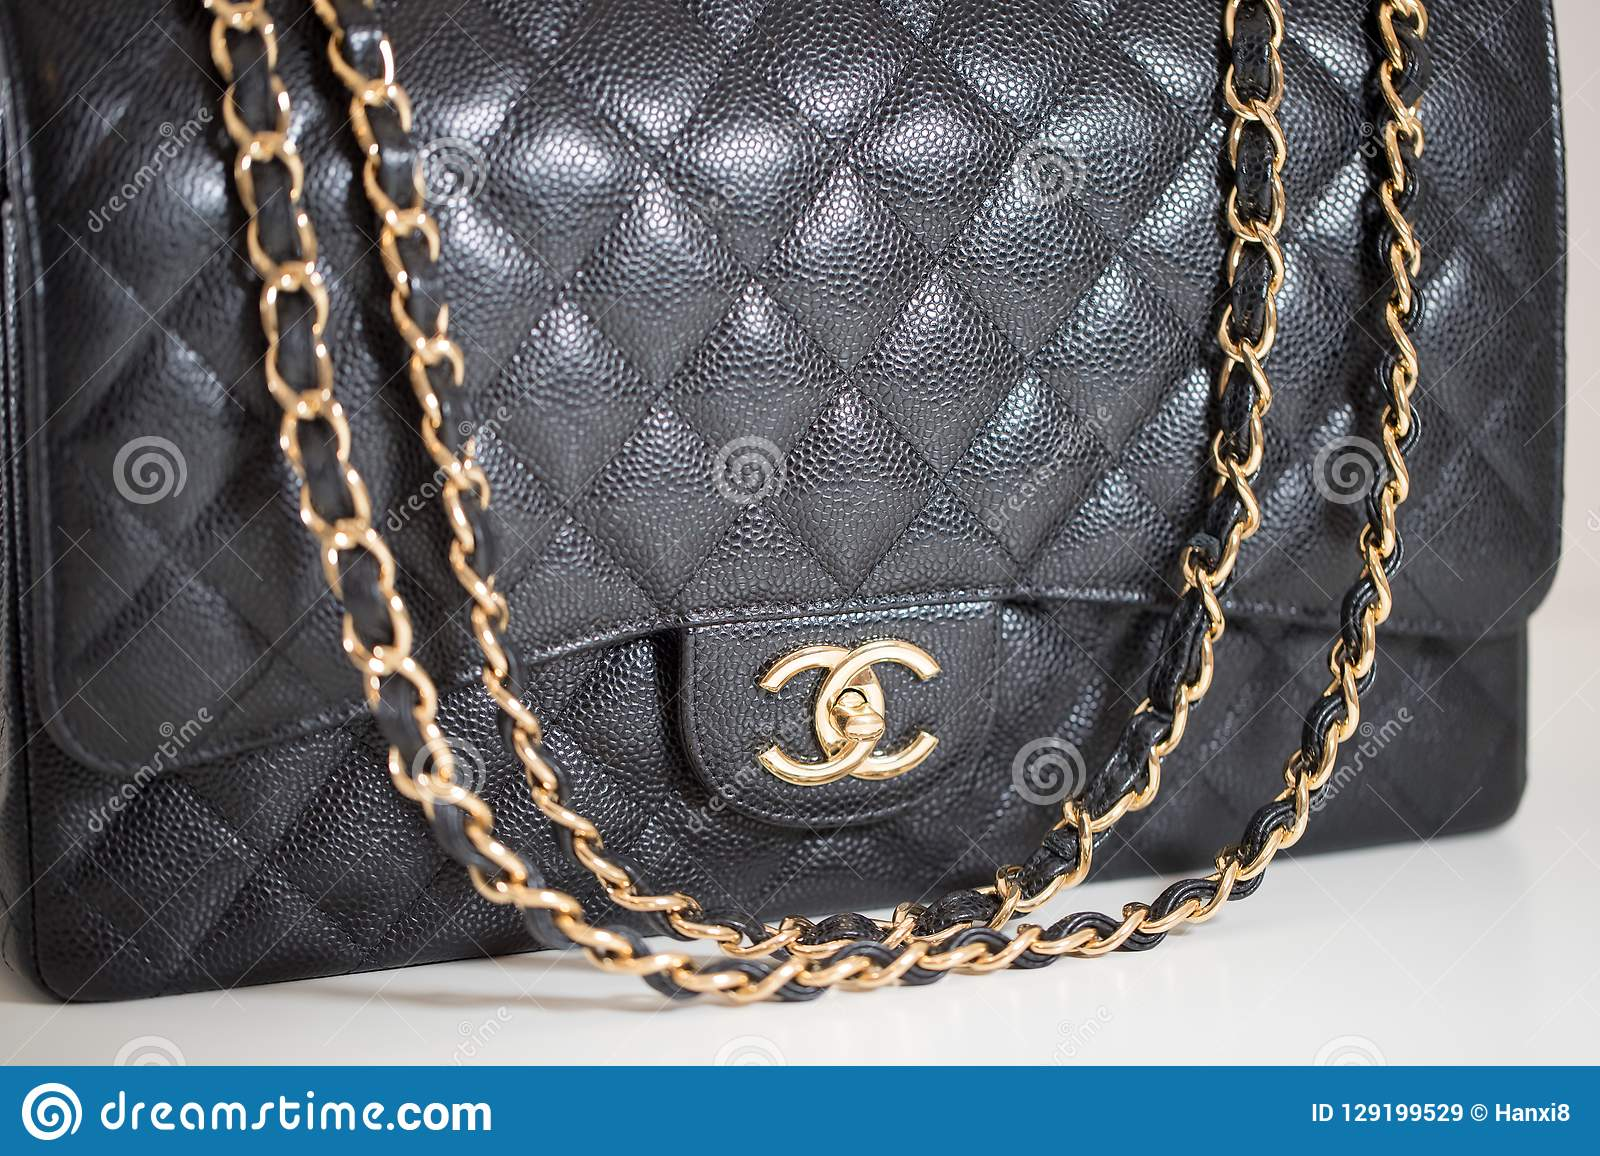 63cf906785 Philadelphia, Pennsylvania, USA, October 18, 2018: Photo of black Chanel  handbag brand Editorial on white background.